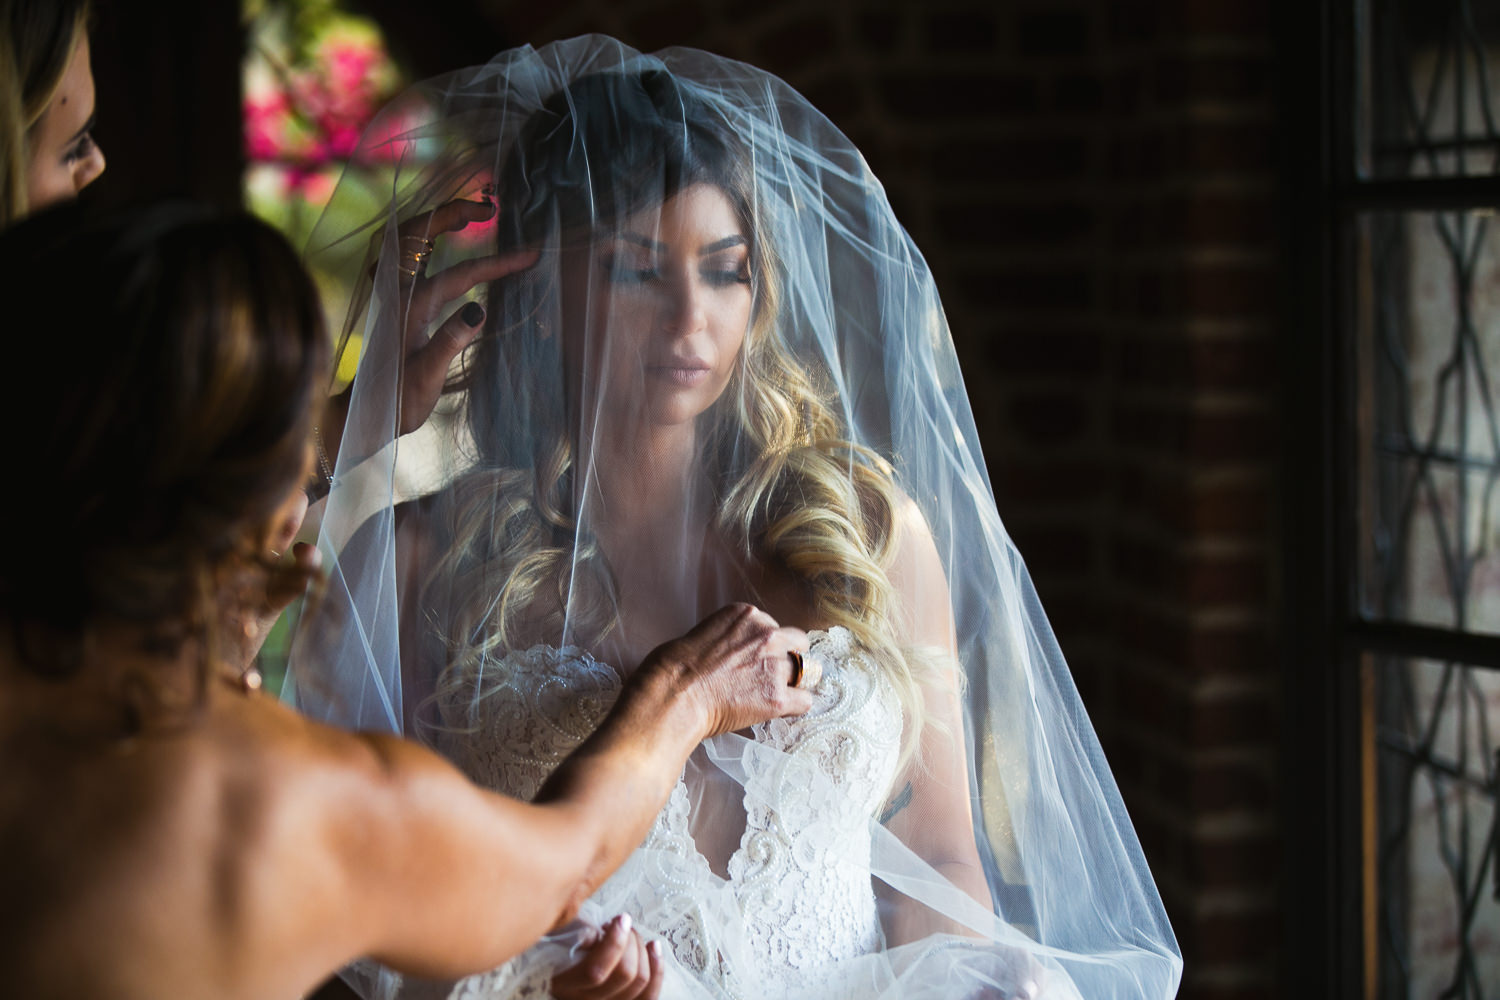 Bride getting ready at the pool house at Hummingbird Nest wedding by Callaway Gable